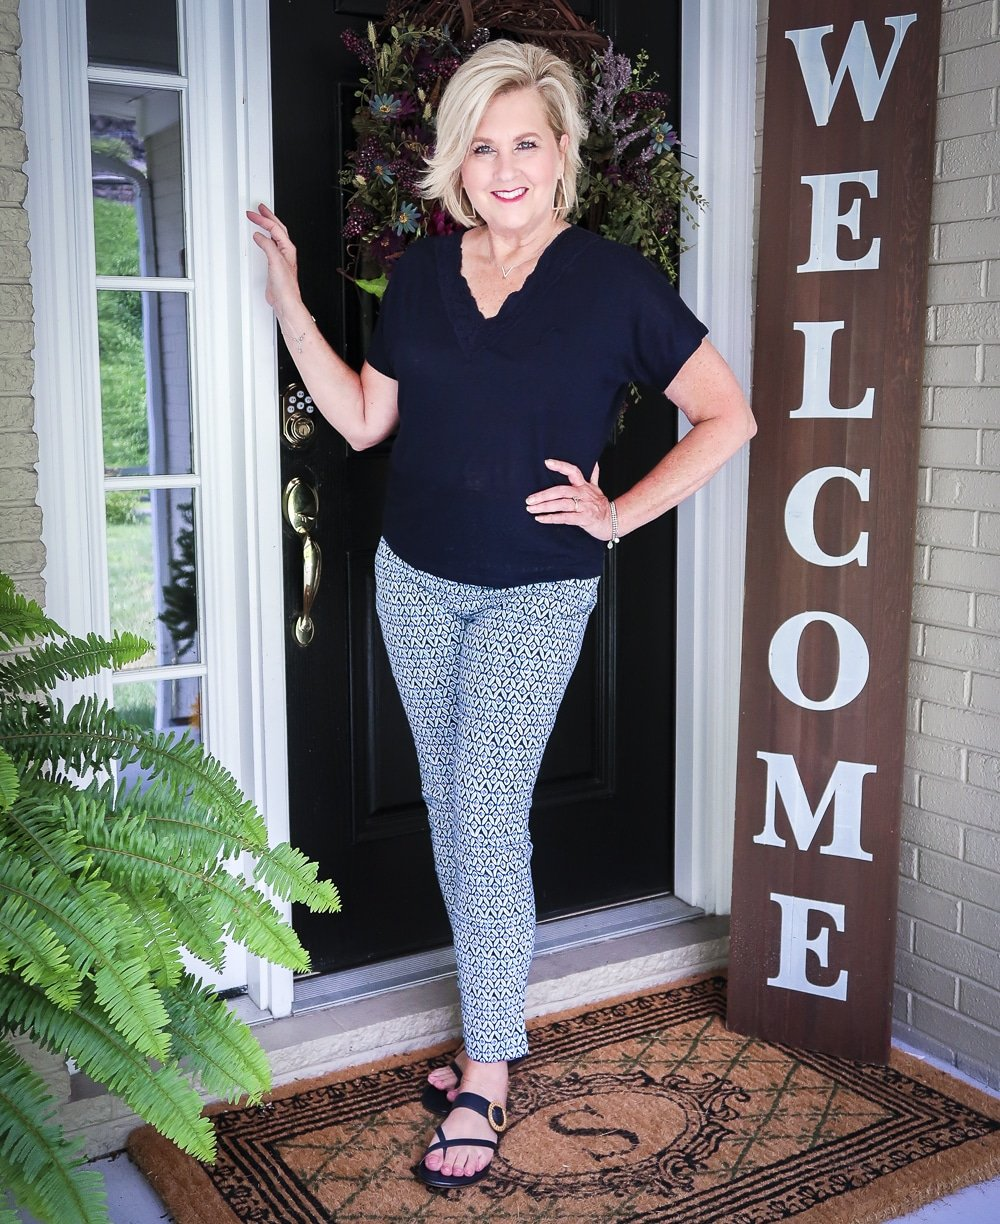 Fashion Blogger 50 Is Not Old wearing a dark navy linen top with a lace neckline and printed ankle pants with navy sandals